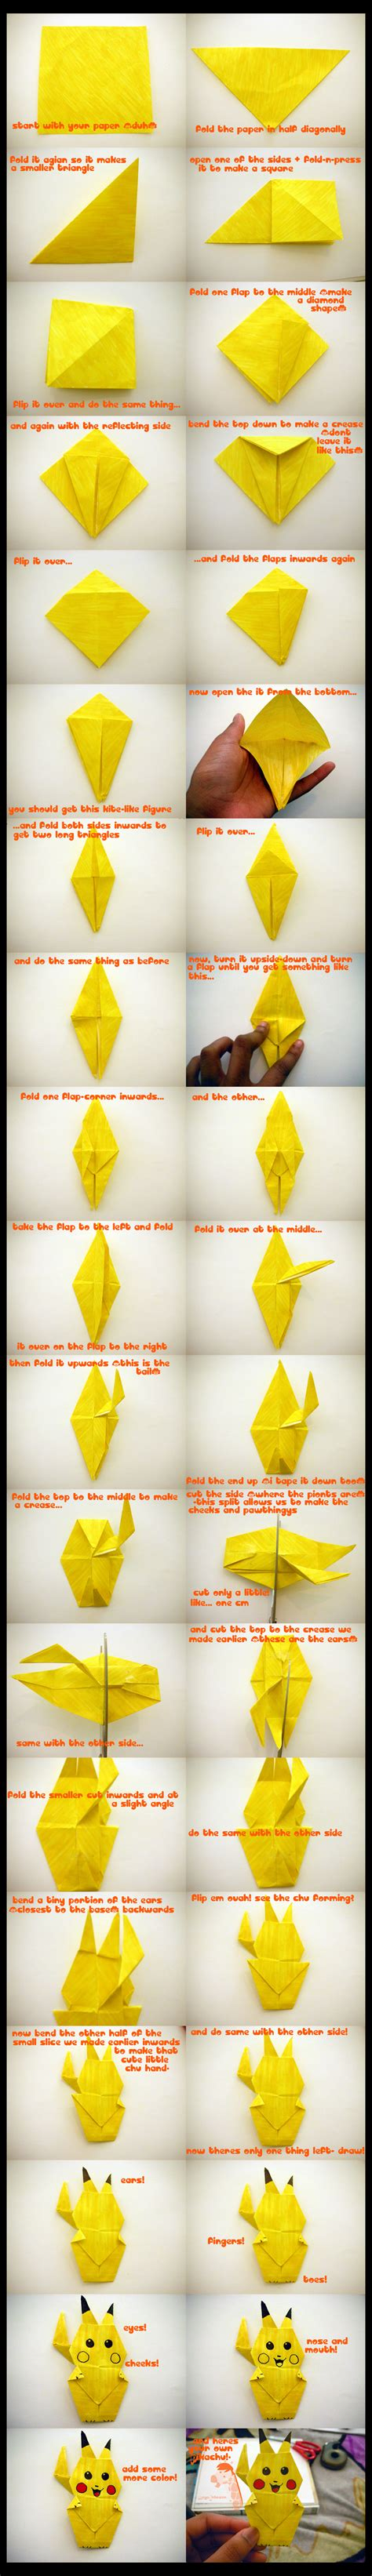 How To Make A Pikachu Origami - how to make an origami pikachu by wesroz on deviantart